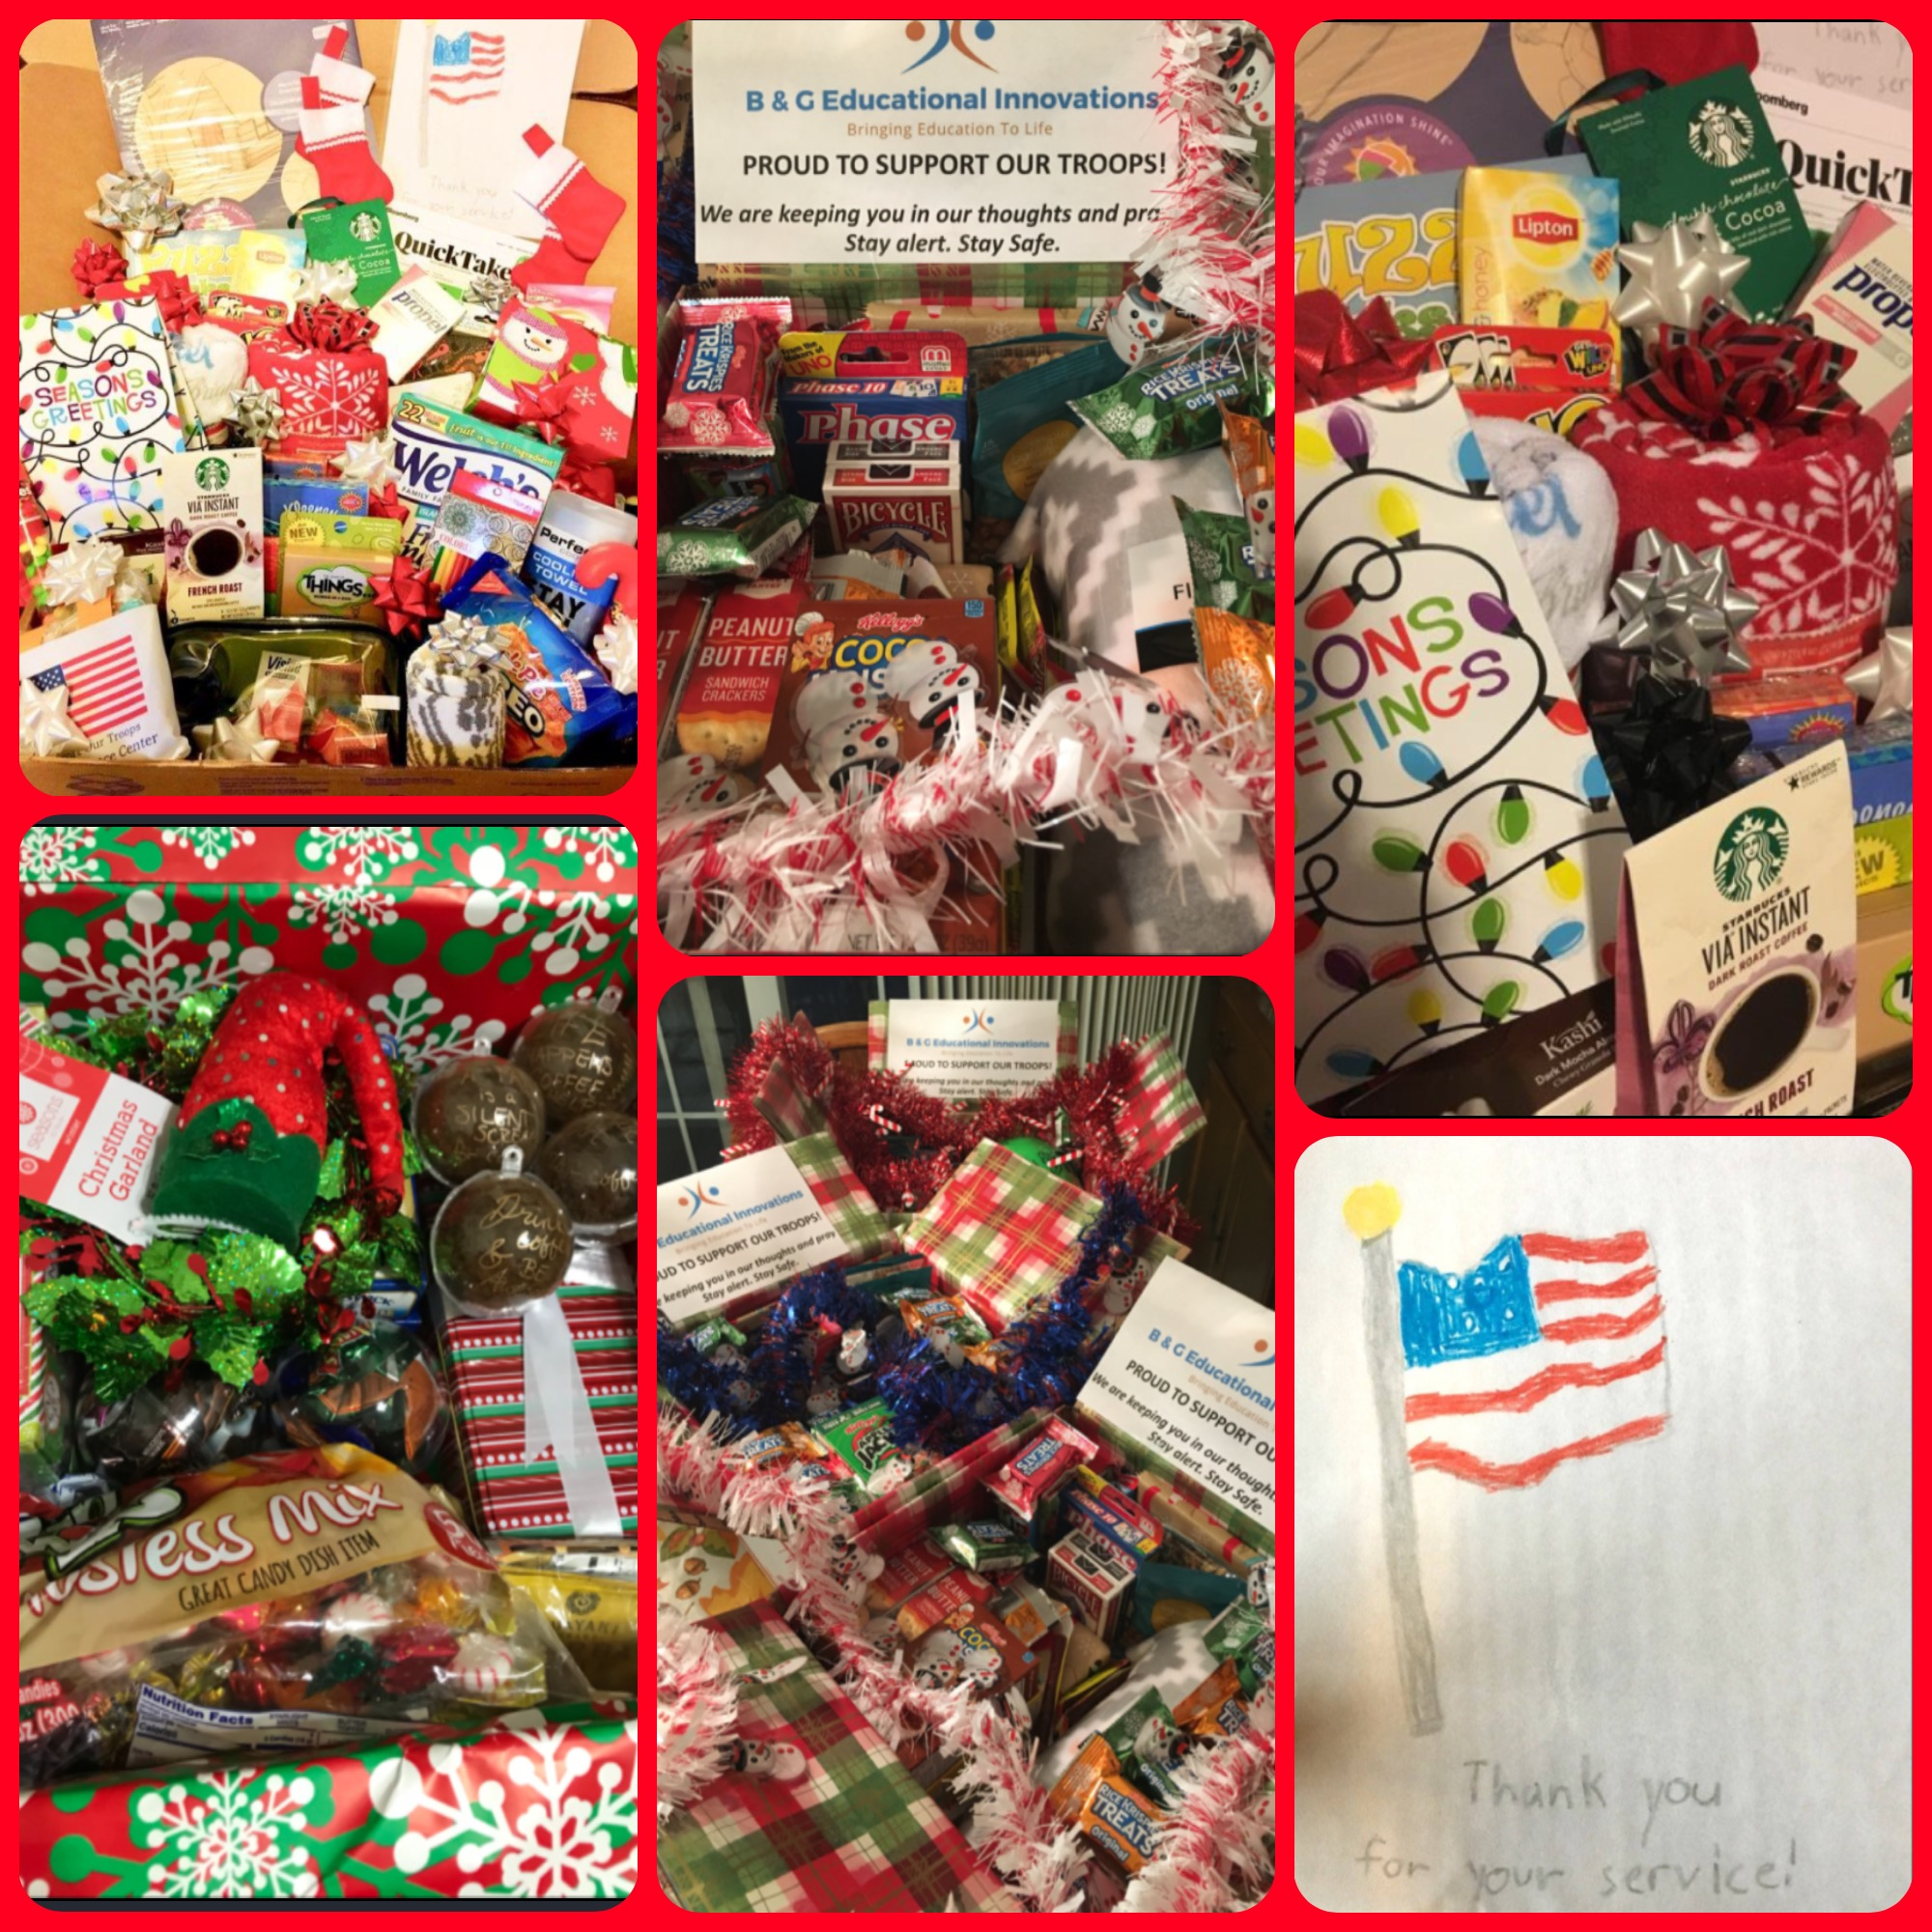 BGEI proudly sent 8 jam packed care packages overseas to our military family. Snacks, games, essentials and even some well written letters from Grace Baptist Church Daycare kids (ages 4-10) showing our gratitude for the sacrifices that are being made.